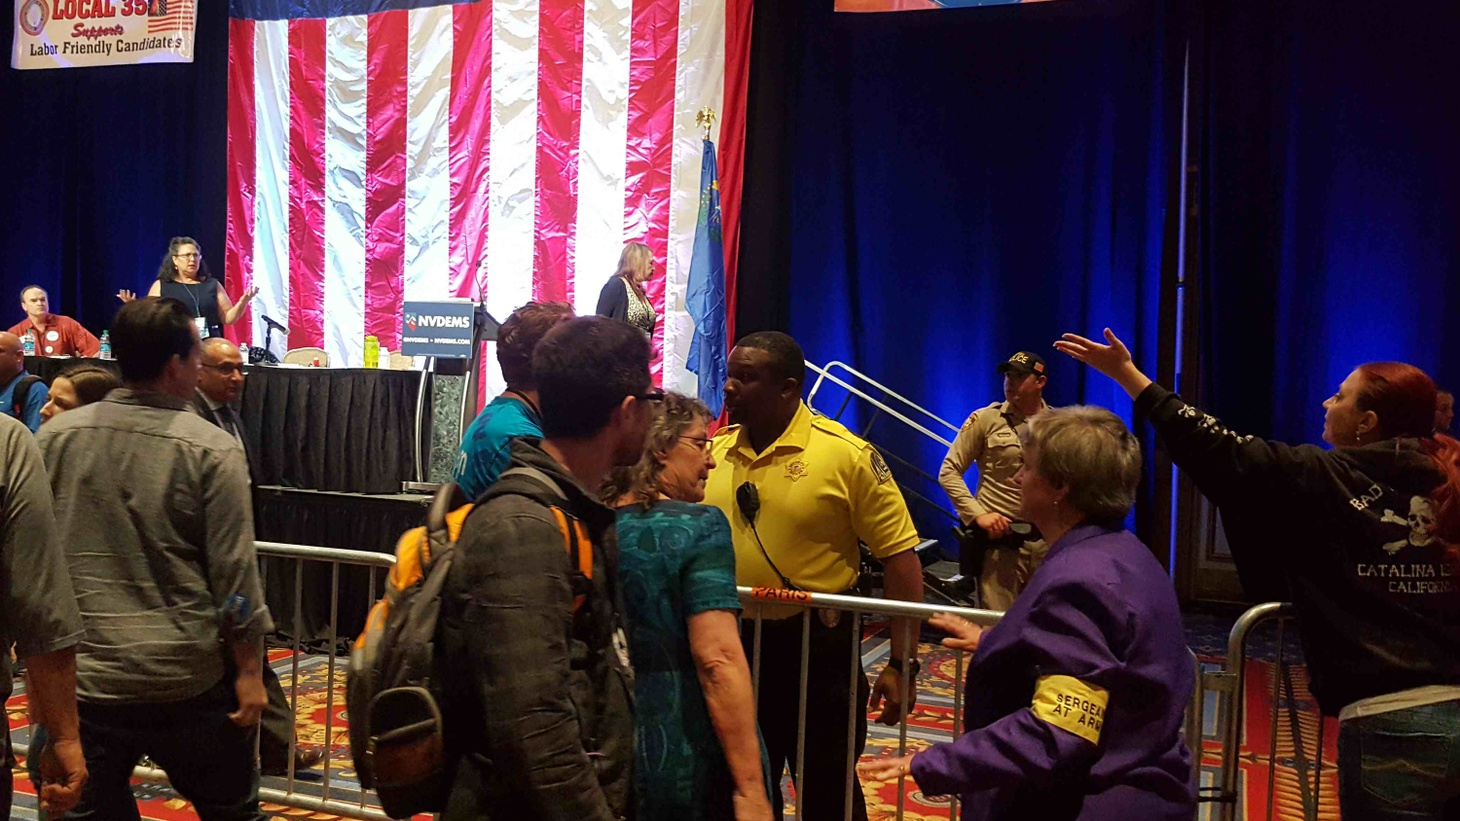 """Now that he looks like the nominee, Donald Trump has stopped saying the Republican process is """"rigged."""" But, as Bernie Sanders keeps winning states without closing the delegate gap, that's what his supporters are calling the Democratic process."""